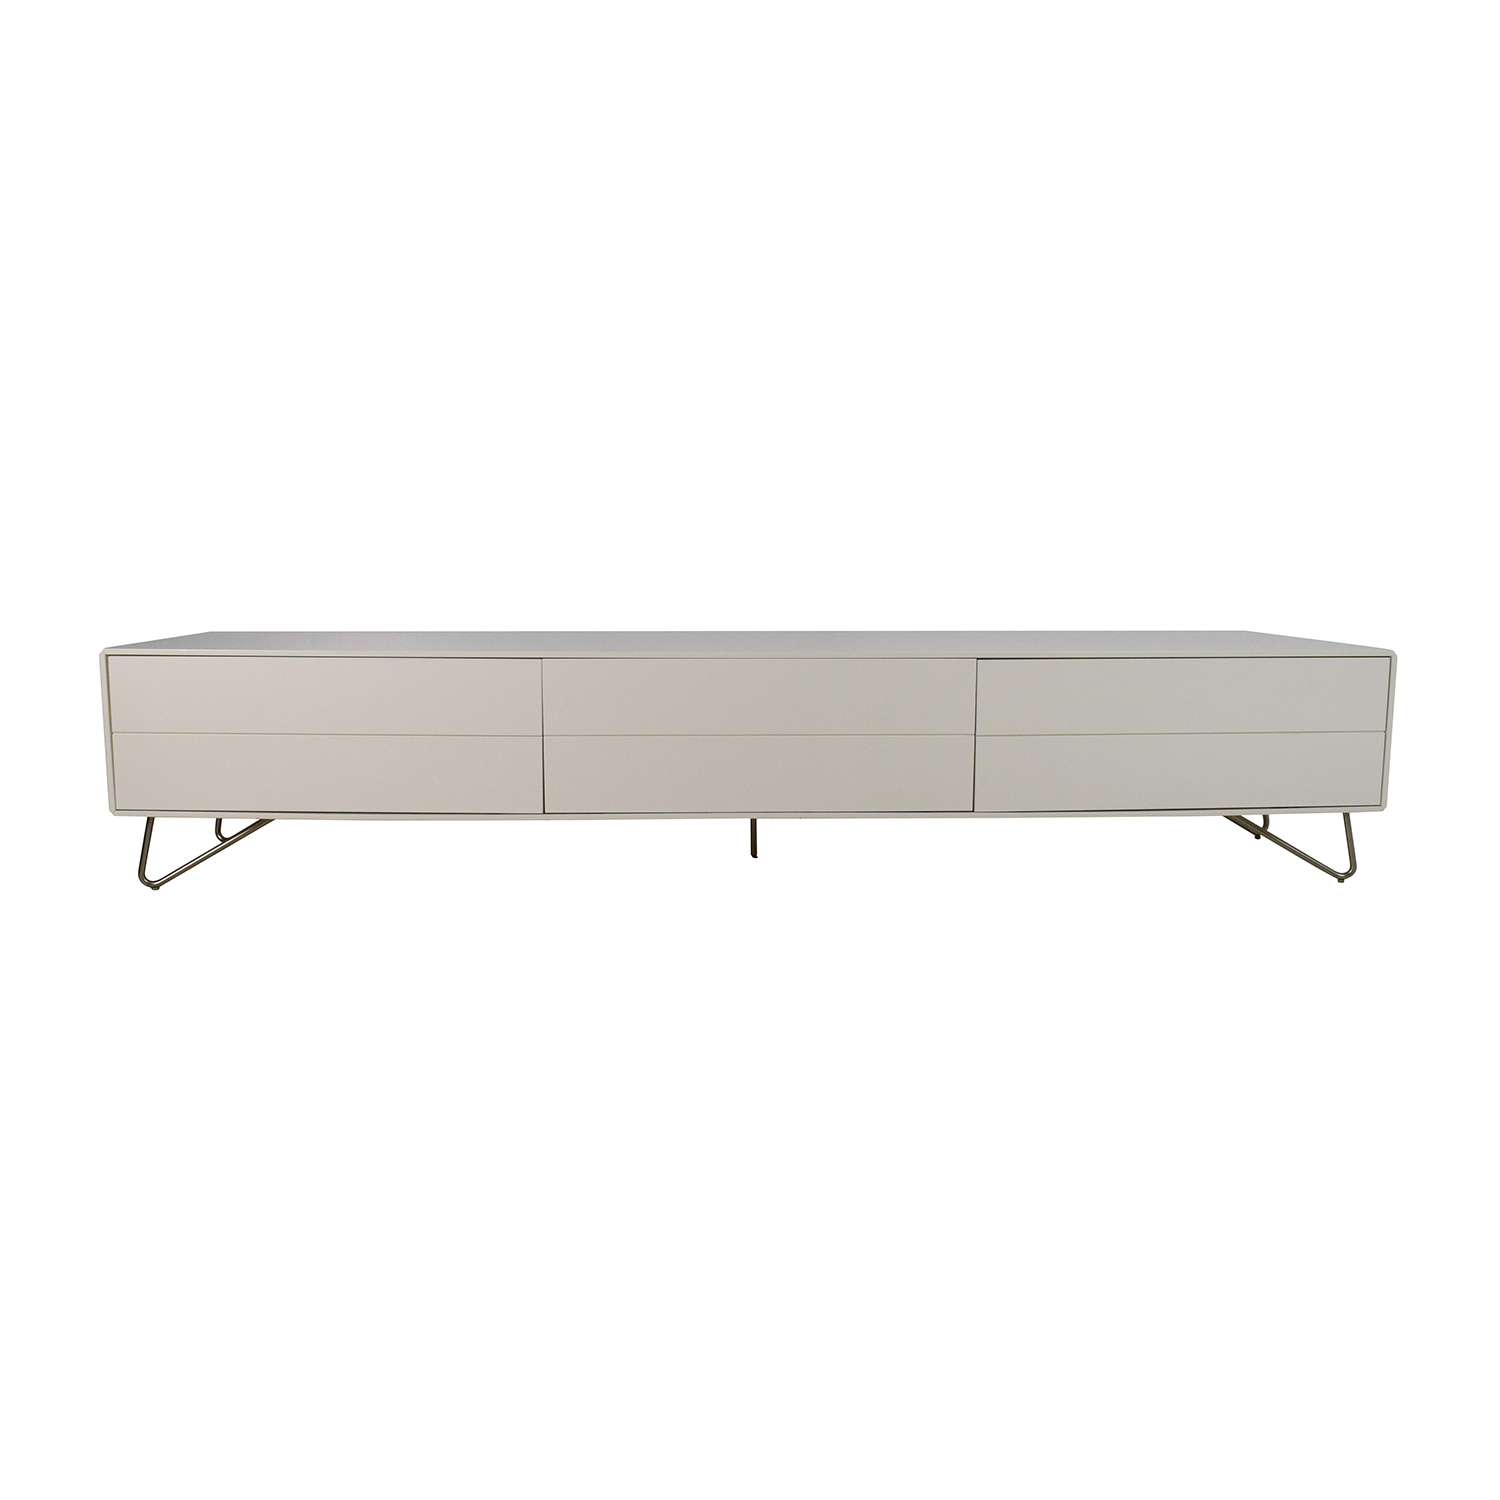 BoConcept BoConcept Fermo Media Unit dimensions